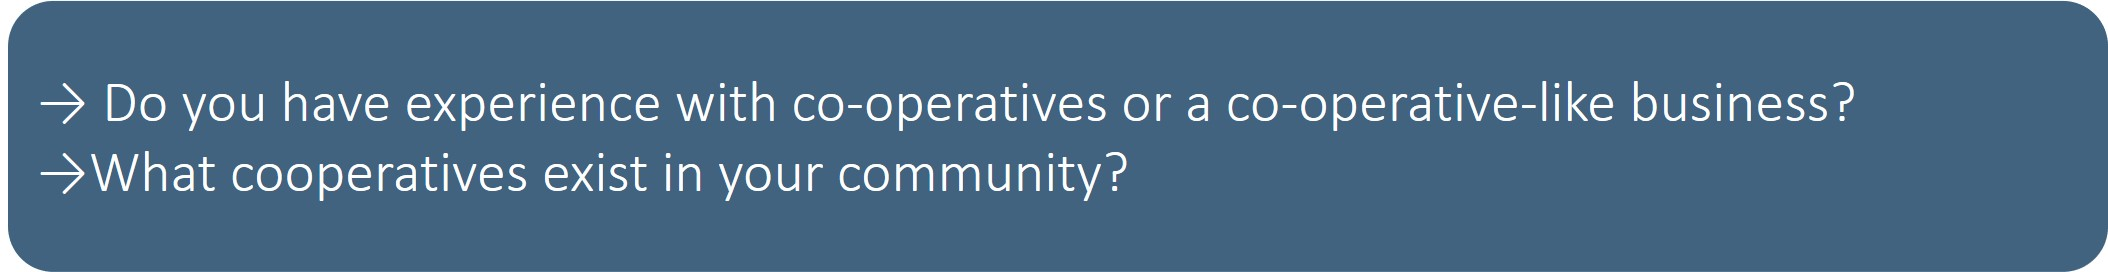 Do you have experience with co-operatives or a co-operative like business? What cooperatives exist in your community?